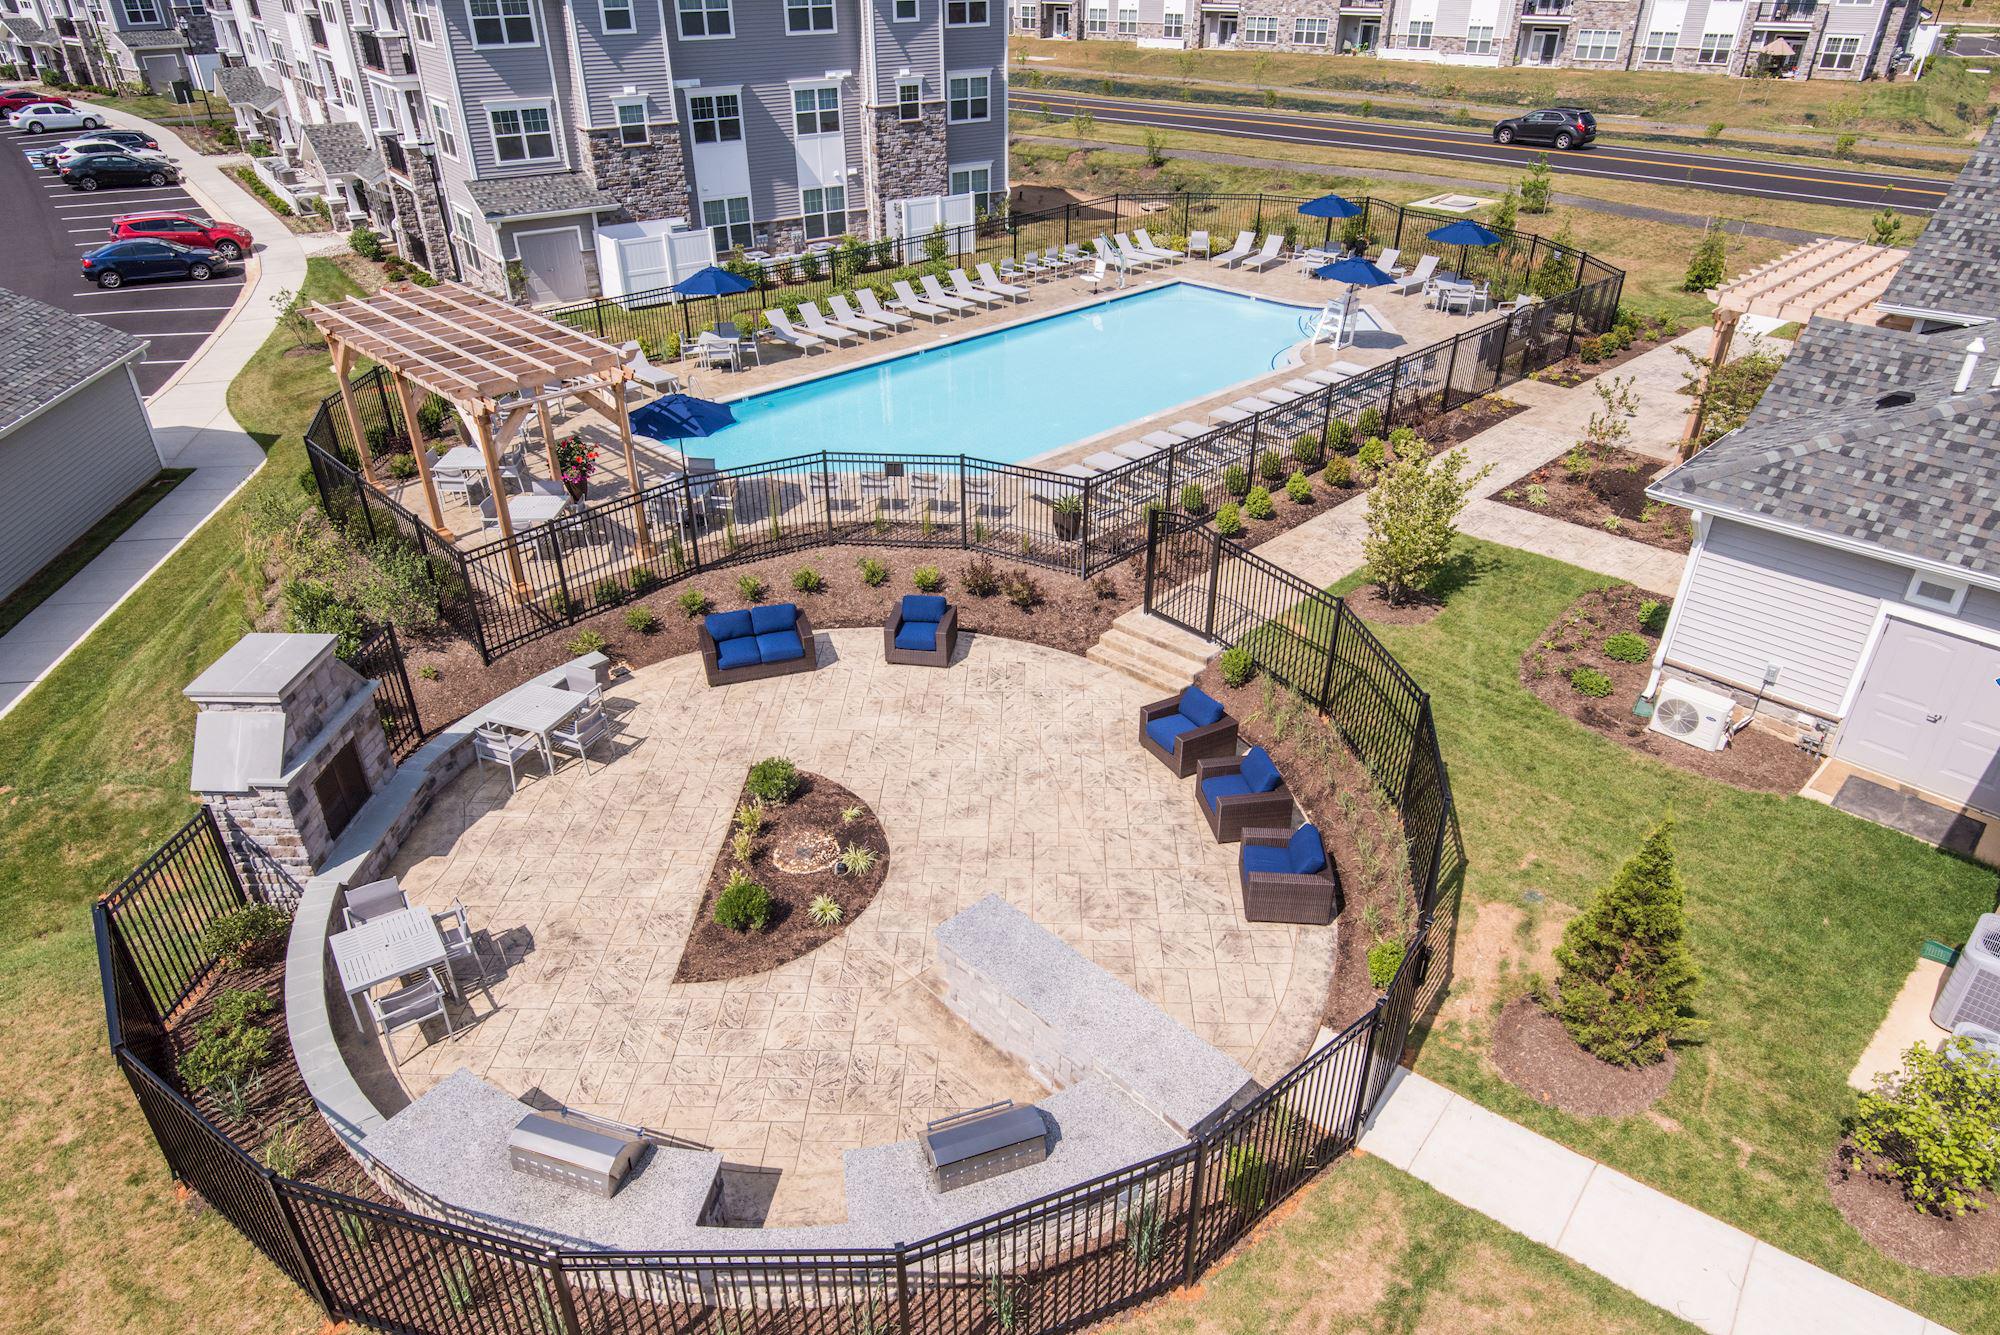 Avanti Luxury Apartments in Bel Air, MD - Outdoor Amenities